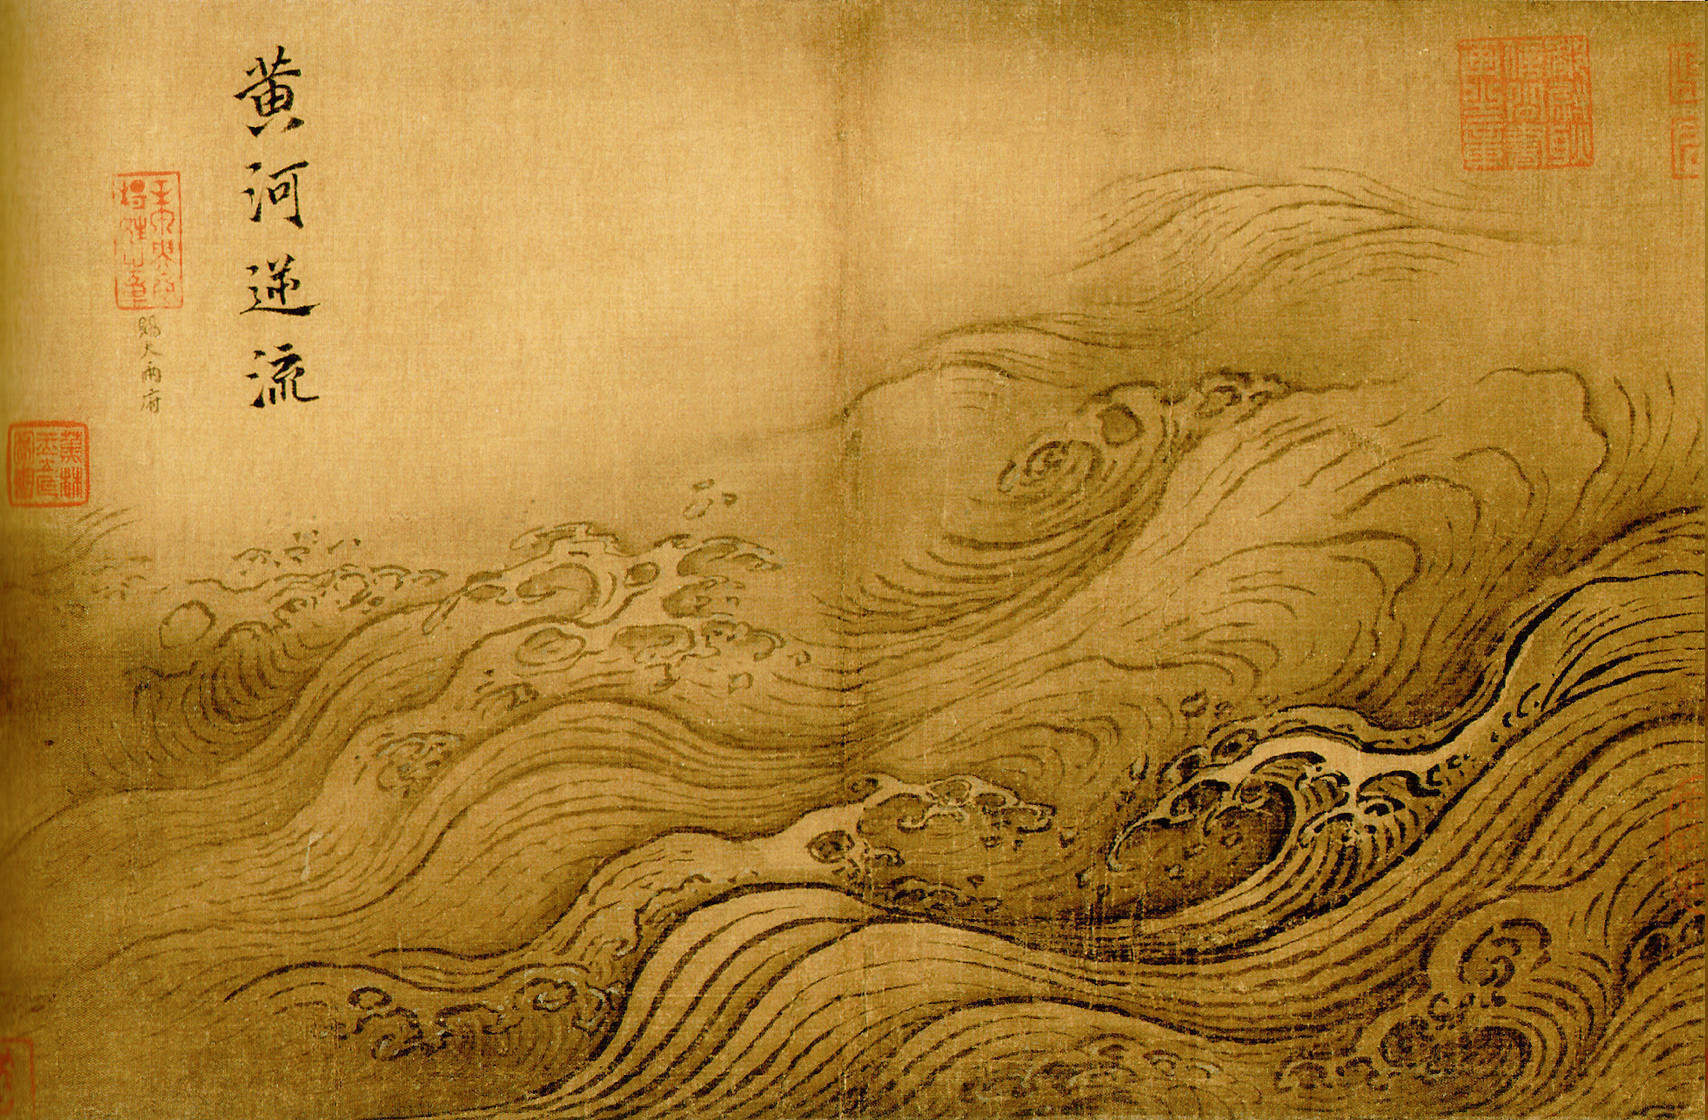 Fresh evidence suggests China's ancient mythical Great Flood might have actually happened